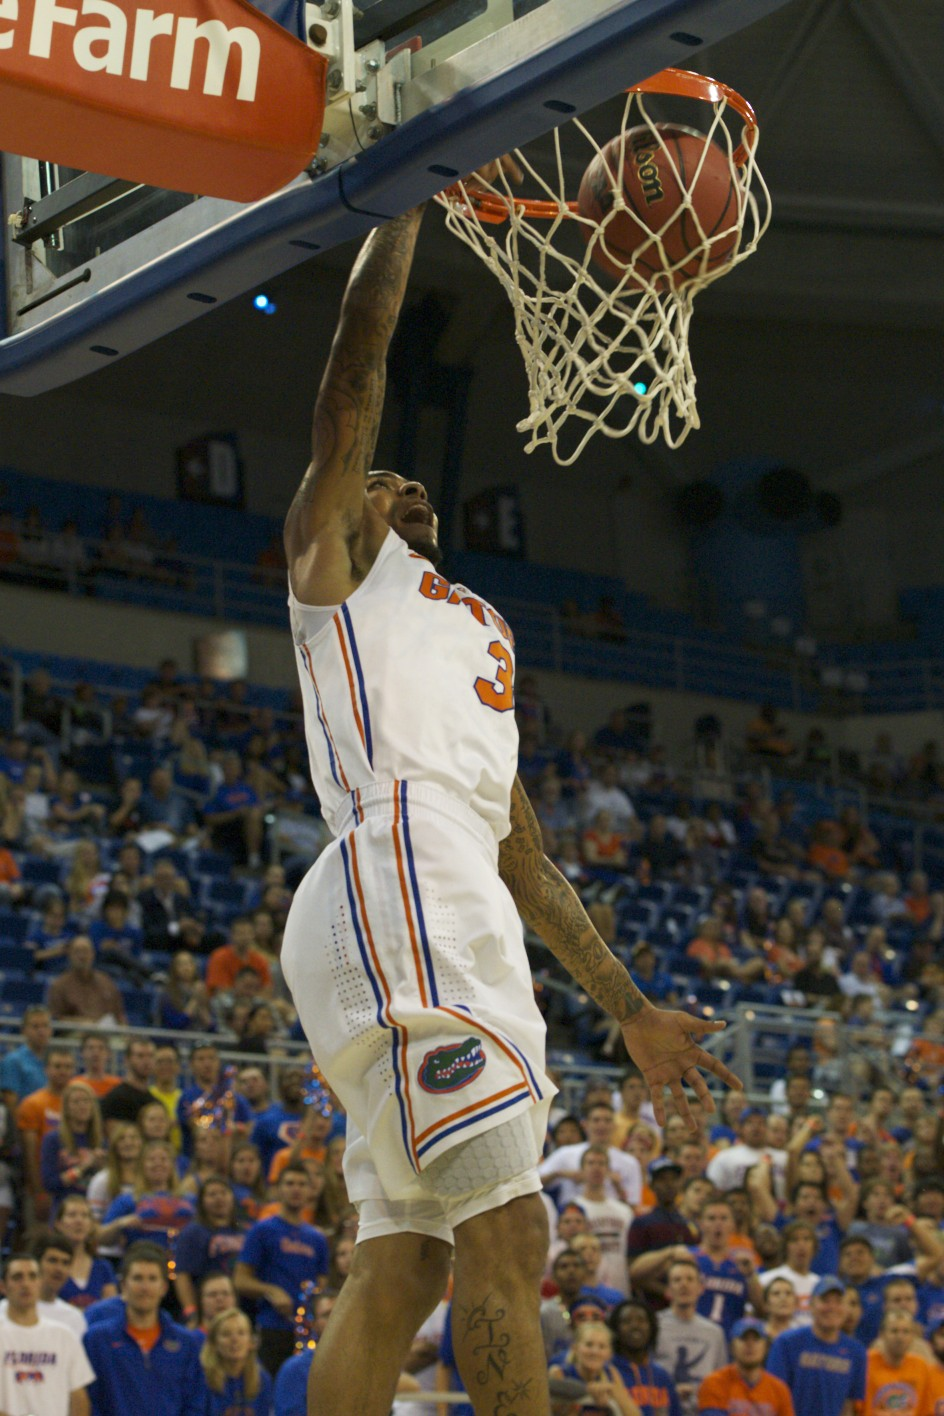 Mike Rosario (3) scores for the Florida Gators in the first half of Sunday's game.